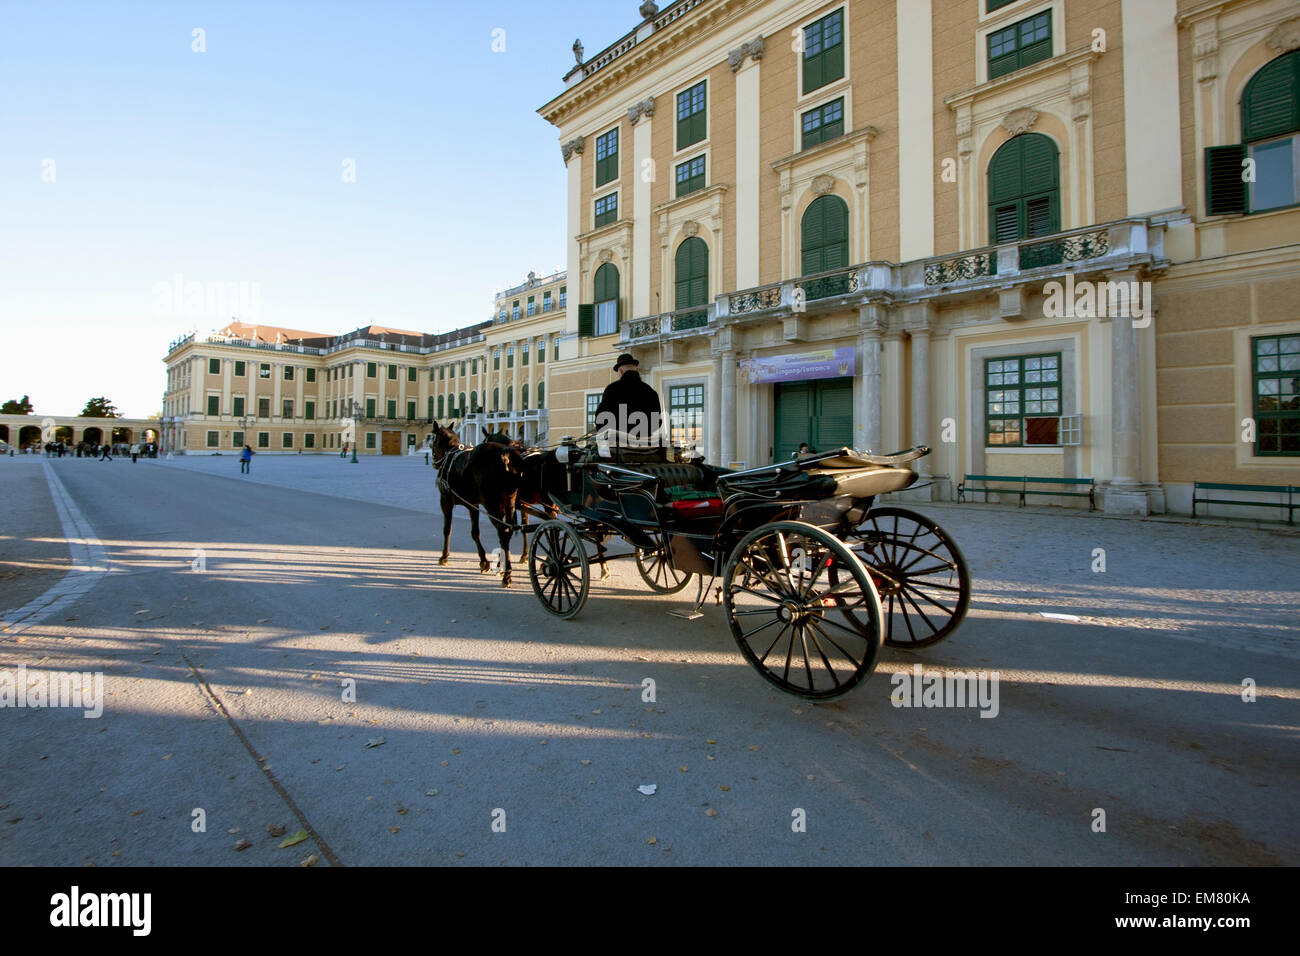 Fiaker (Viennese two-horse hackney carriage) at Schonbrunn Palace, Vienna (Wien), Austria - Stock Image